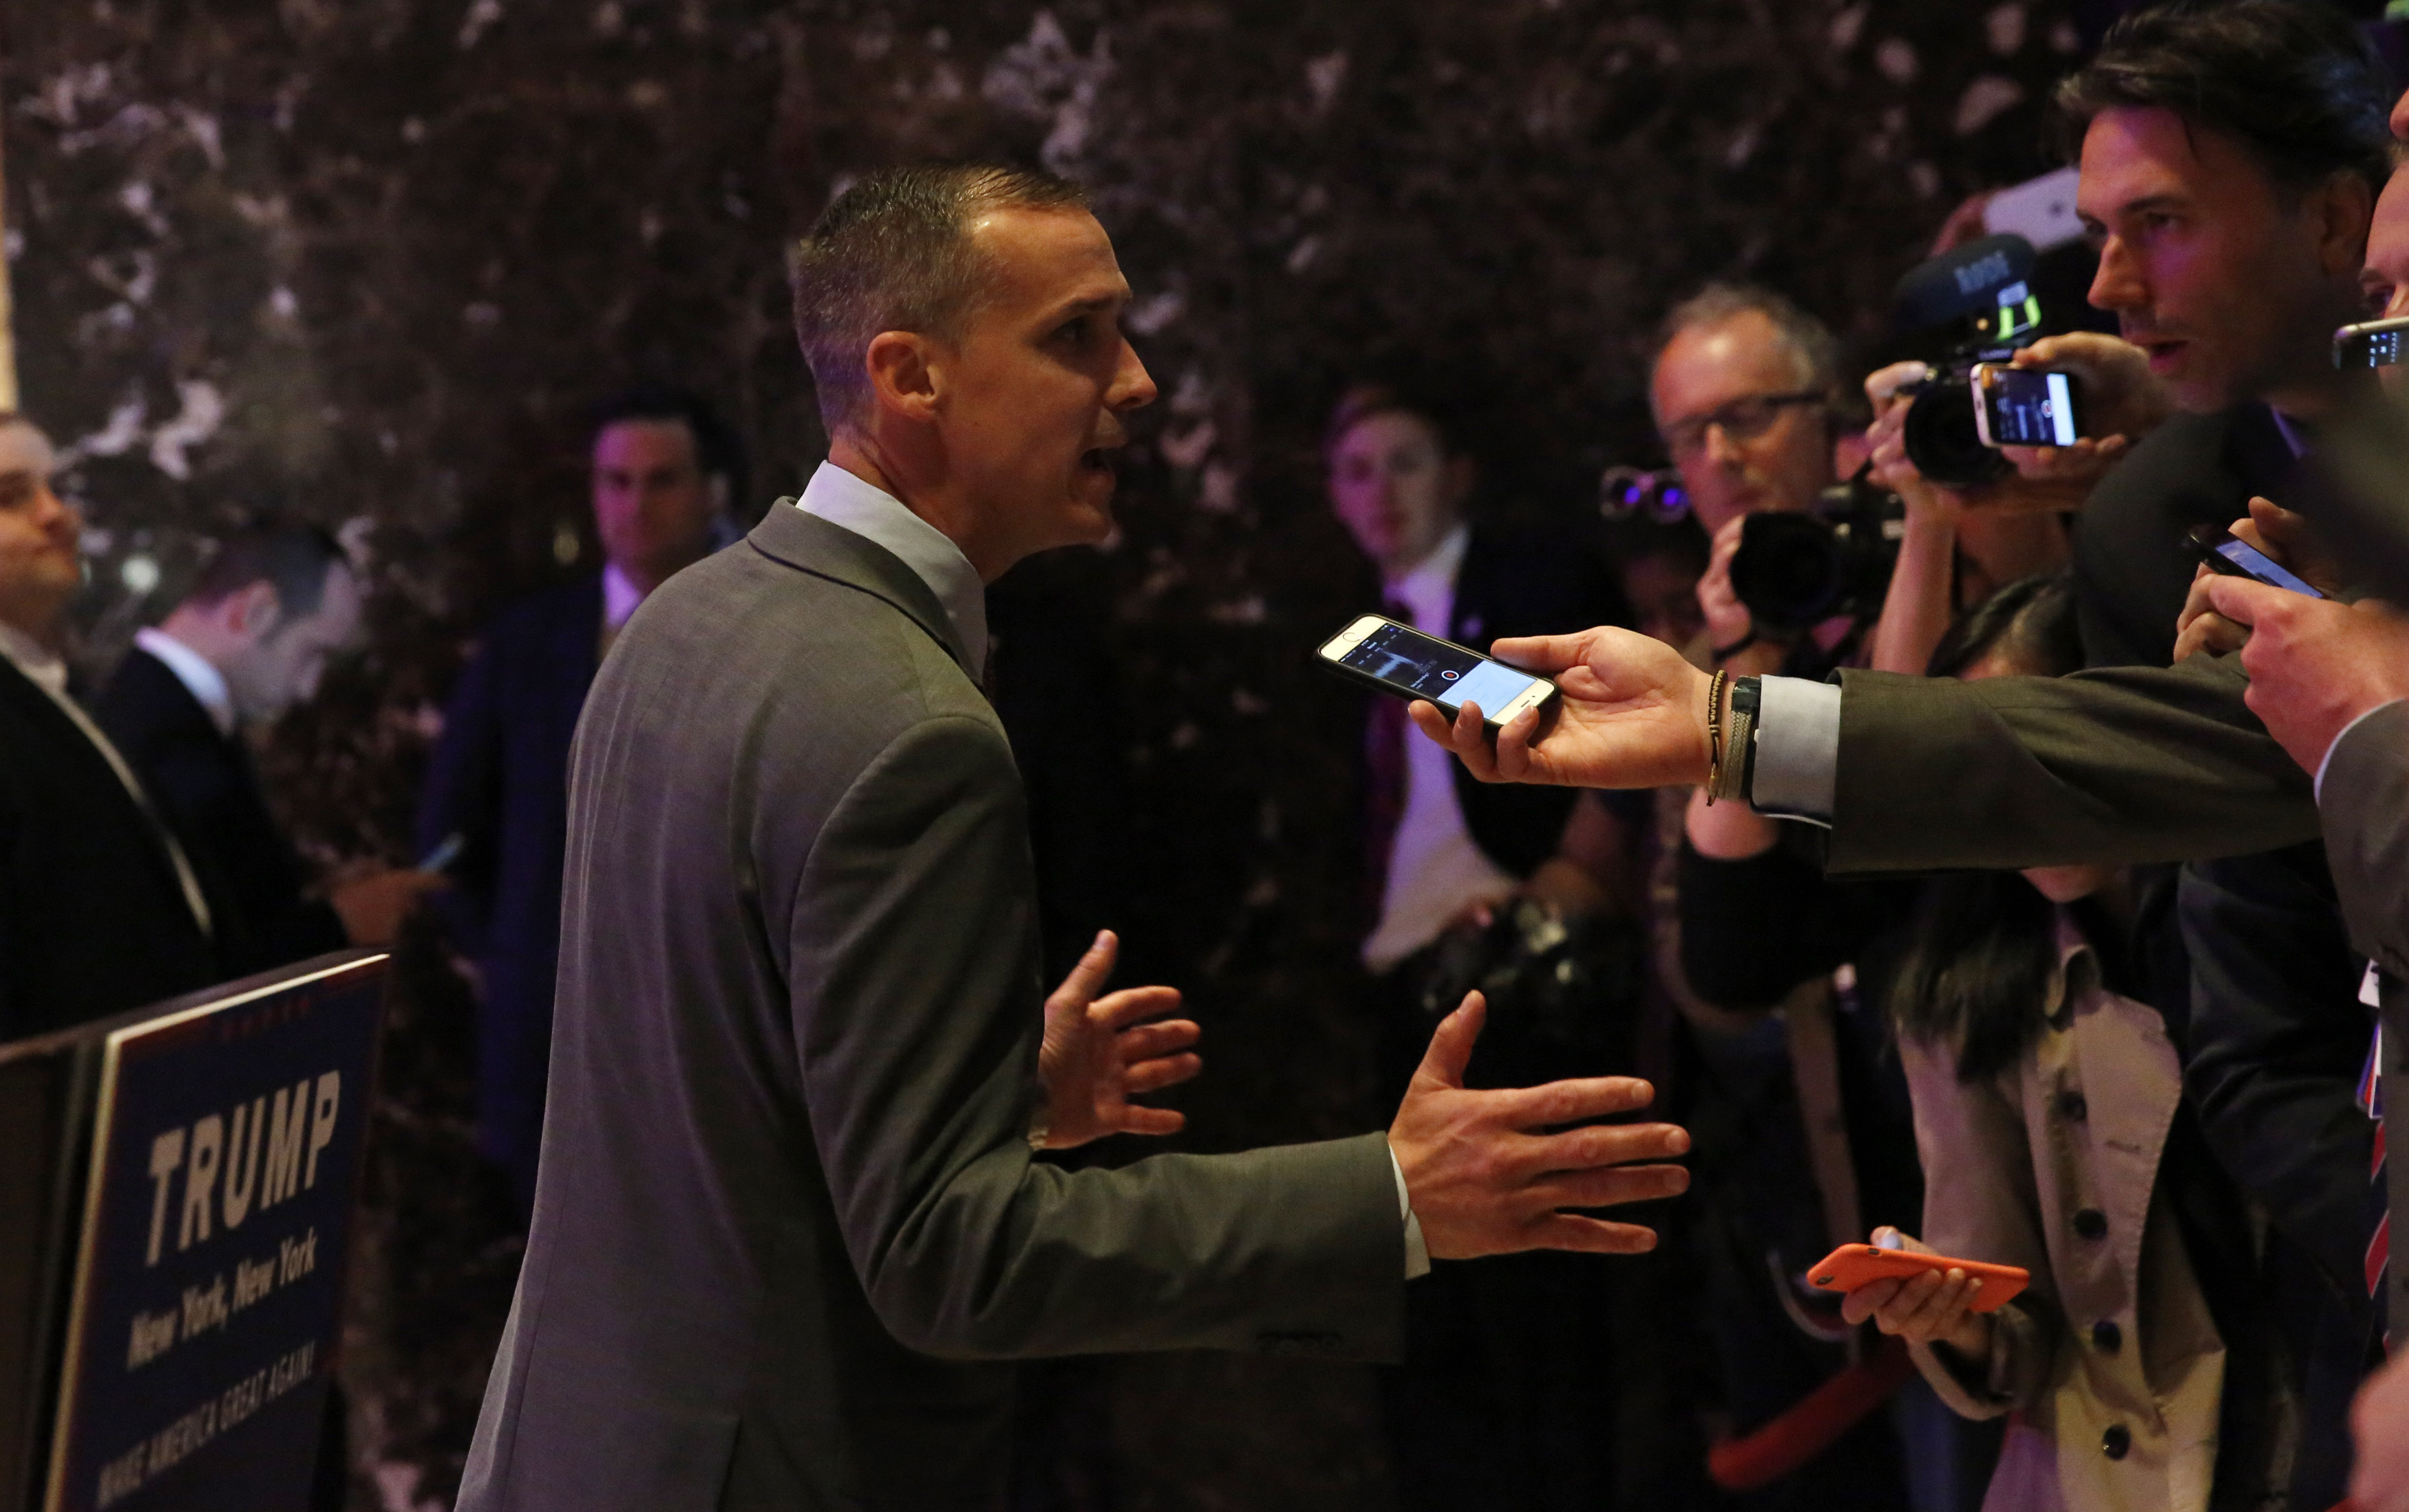 Corey Lewandowski, campaign manager for Republican U.S. presidential candidate Donald Trump, talks to the media before the start of Trump's New York presidential primary night rally in Manhattan, New York, U.S.A, April 19, 2016. REUTERS/Shannon Stapleton